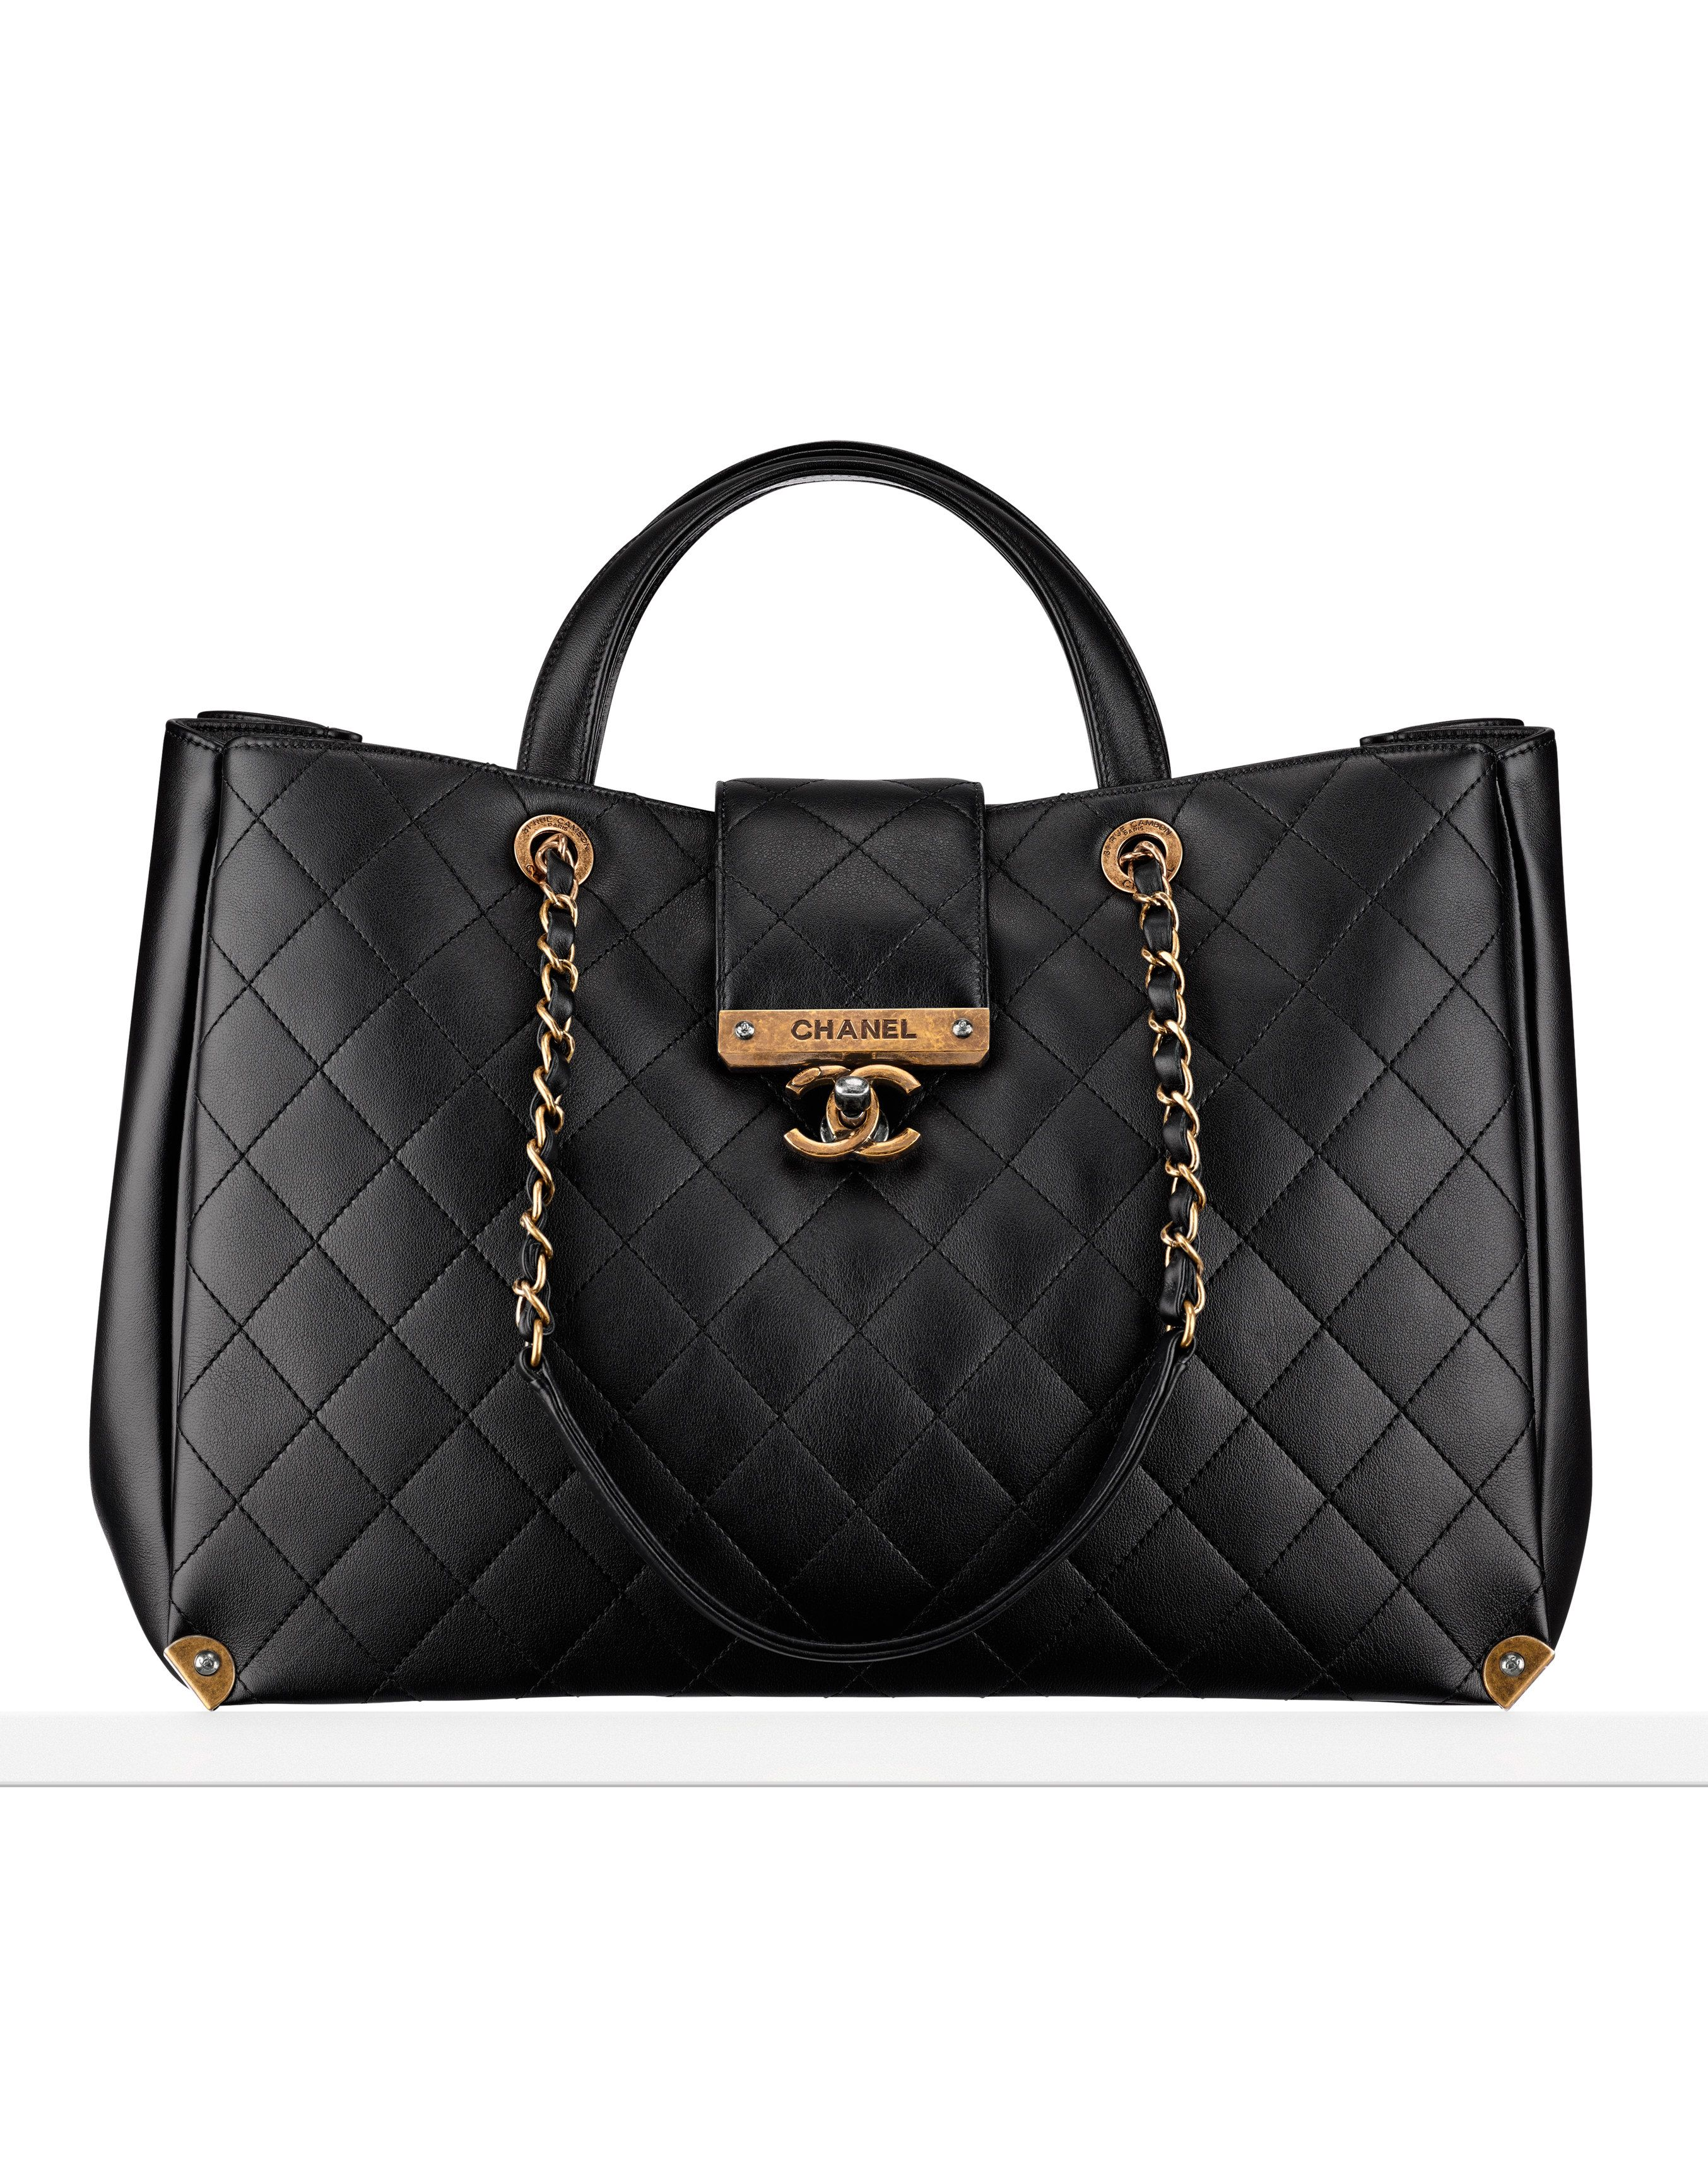 coco chanel bags 2014 wwwpixsharkcom images